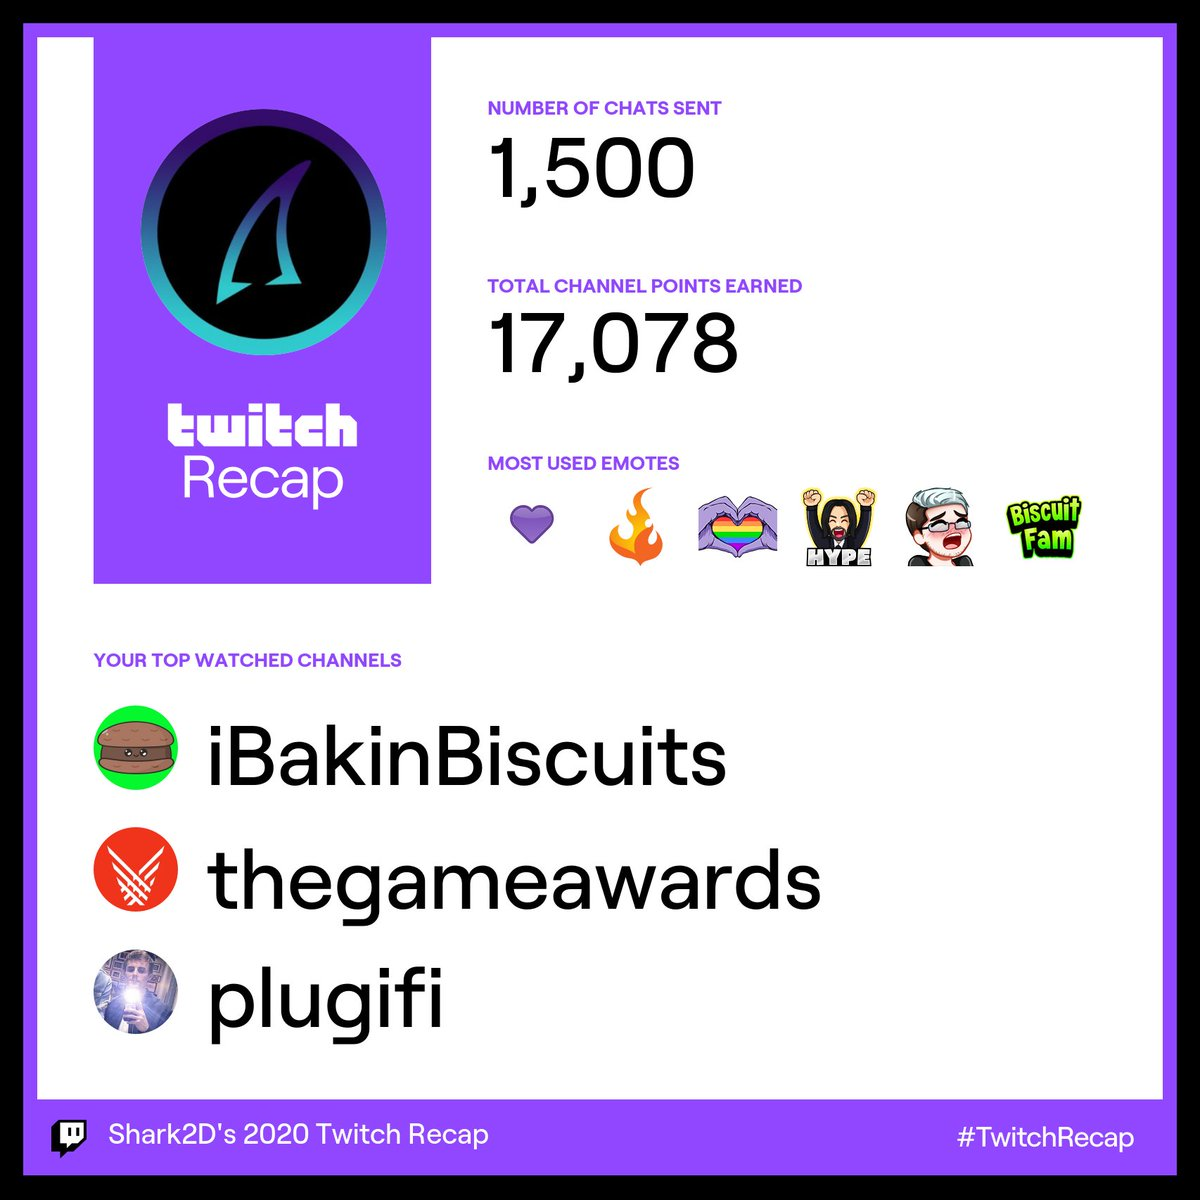 Top Watched Channels for 2020 #TwitchRecap: 1. @iBakinBiscuits - 24 hours 2. @thegameawards - 3 hours 3. @PrezPlug - 1 hour (sorry plug)